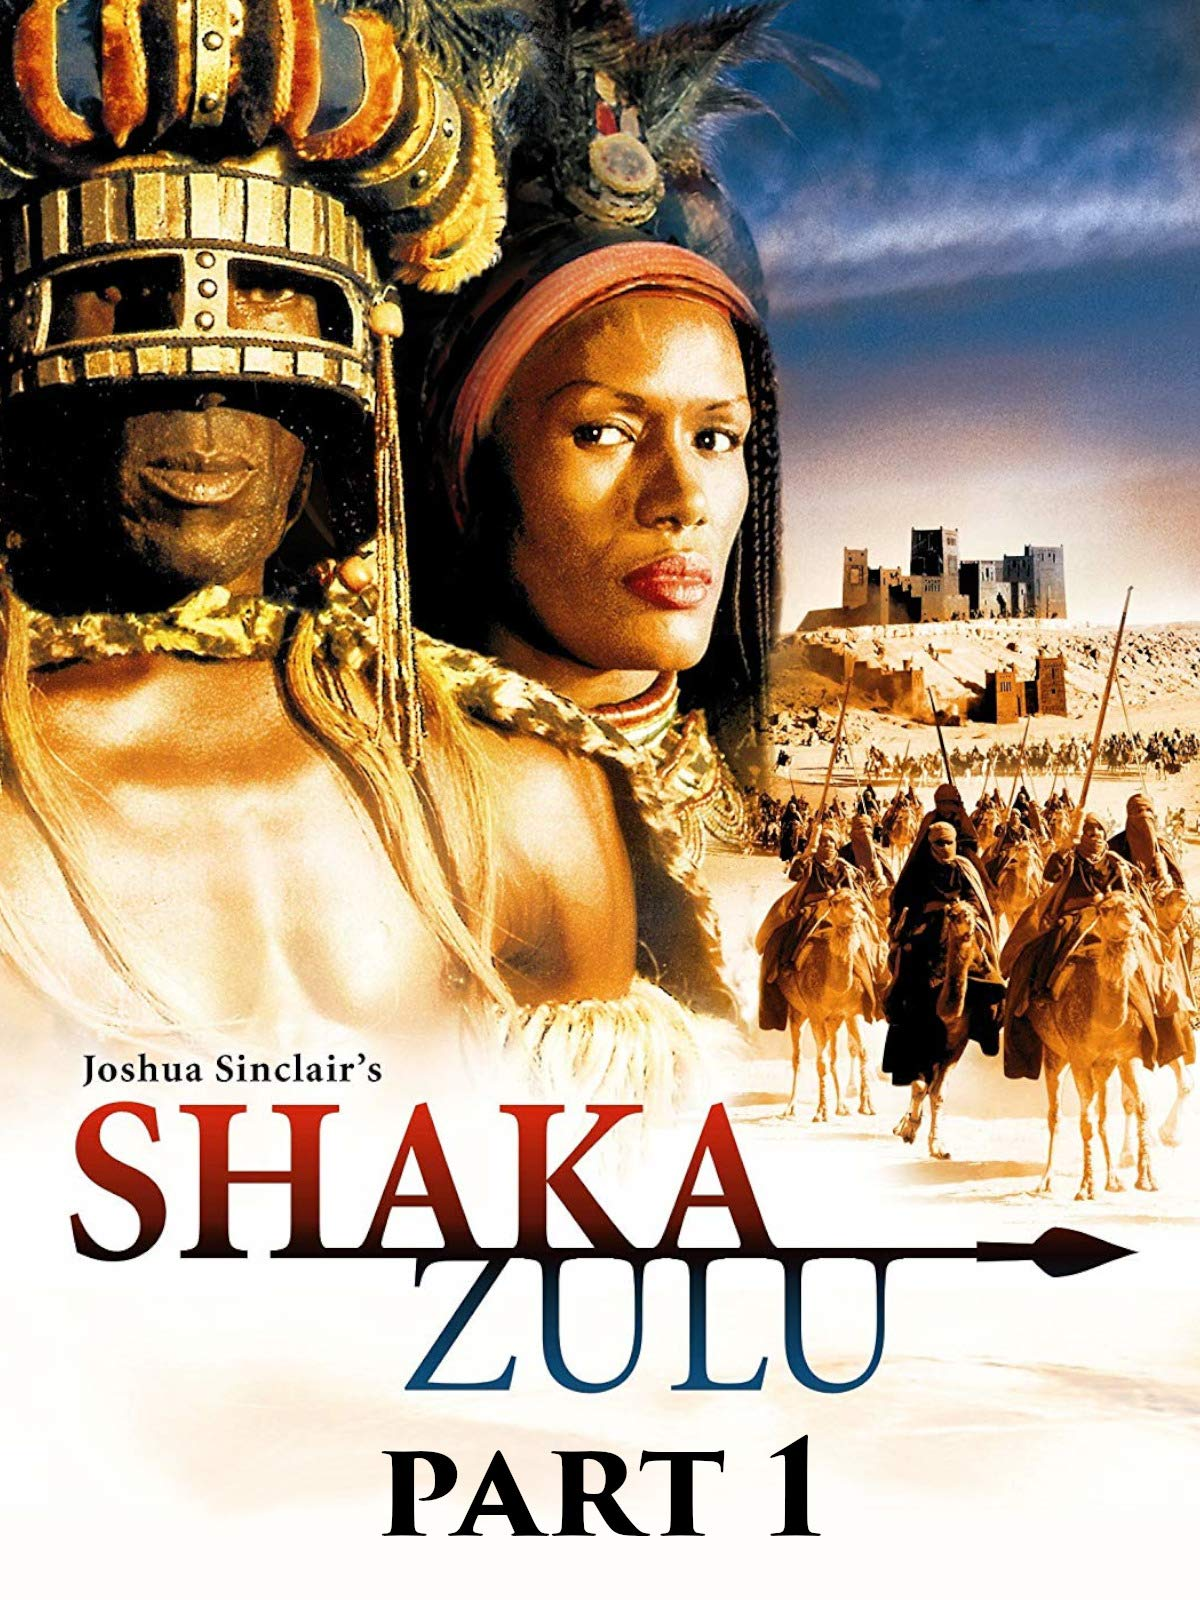 Shaka Zulu (First Part)